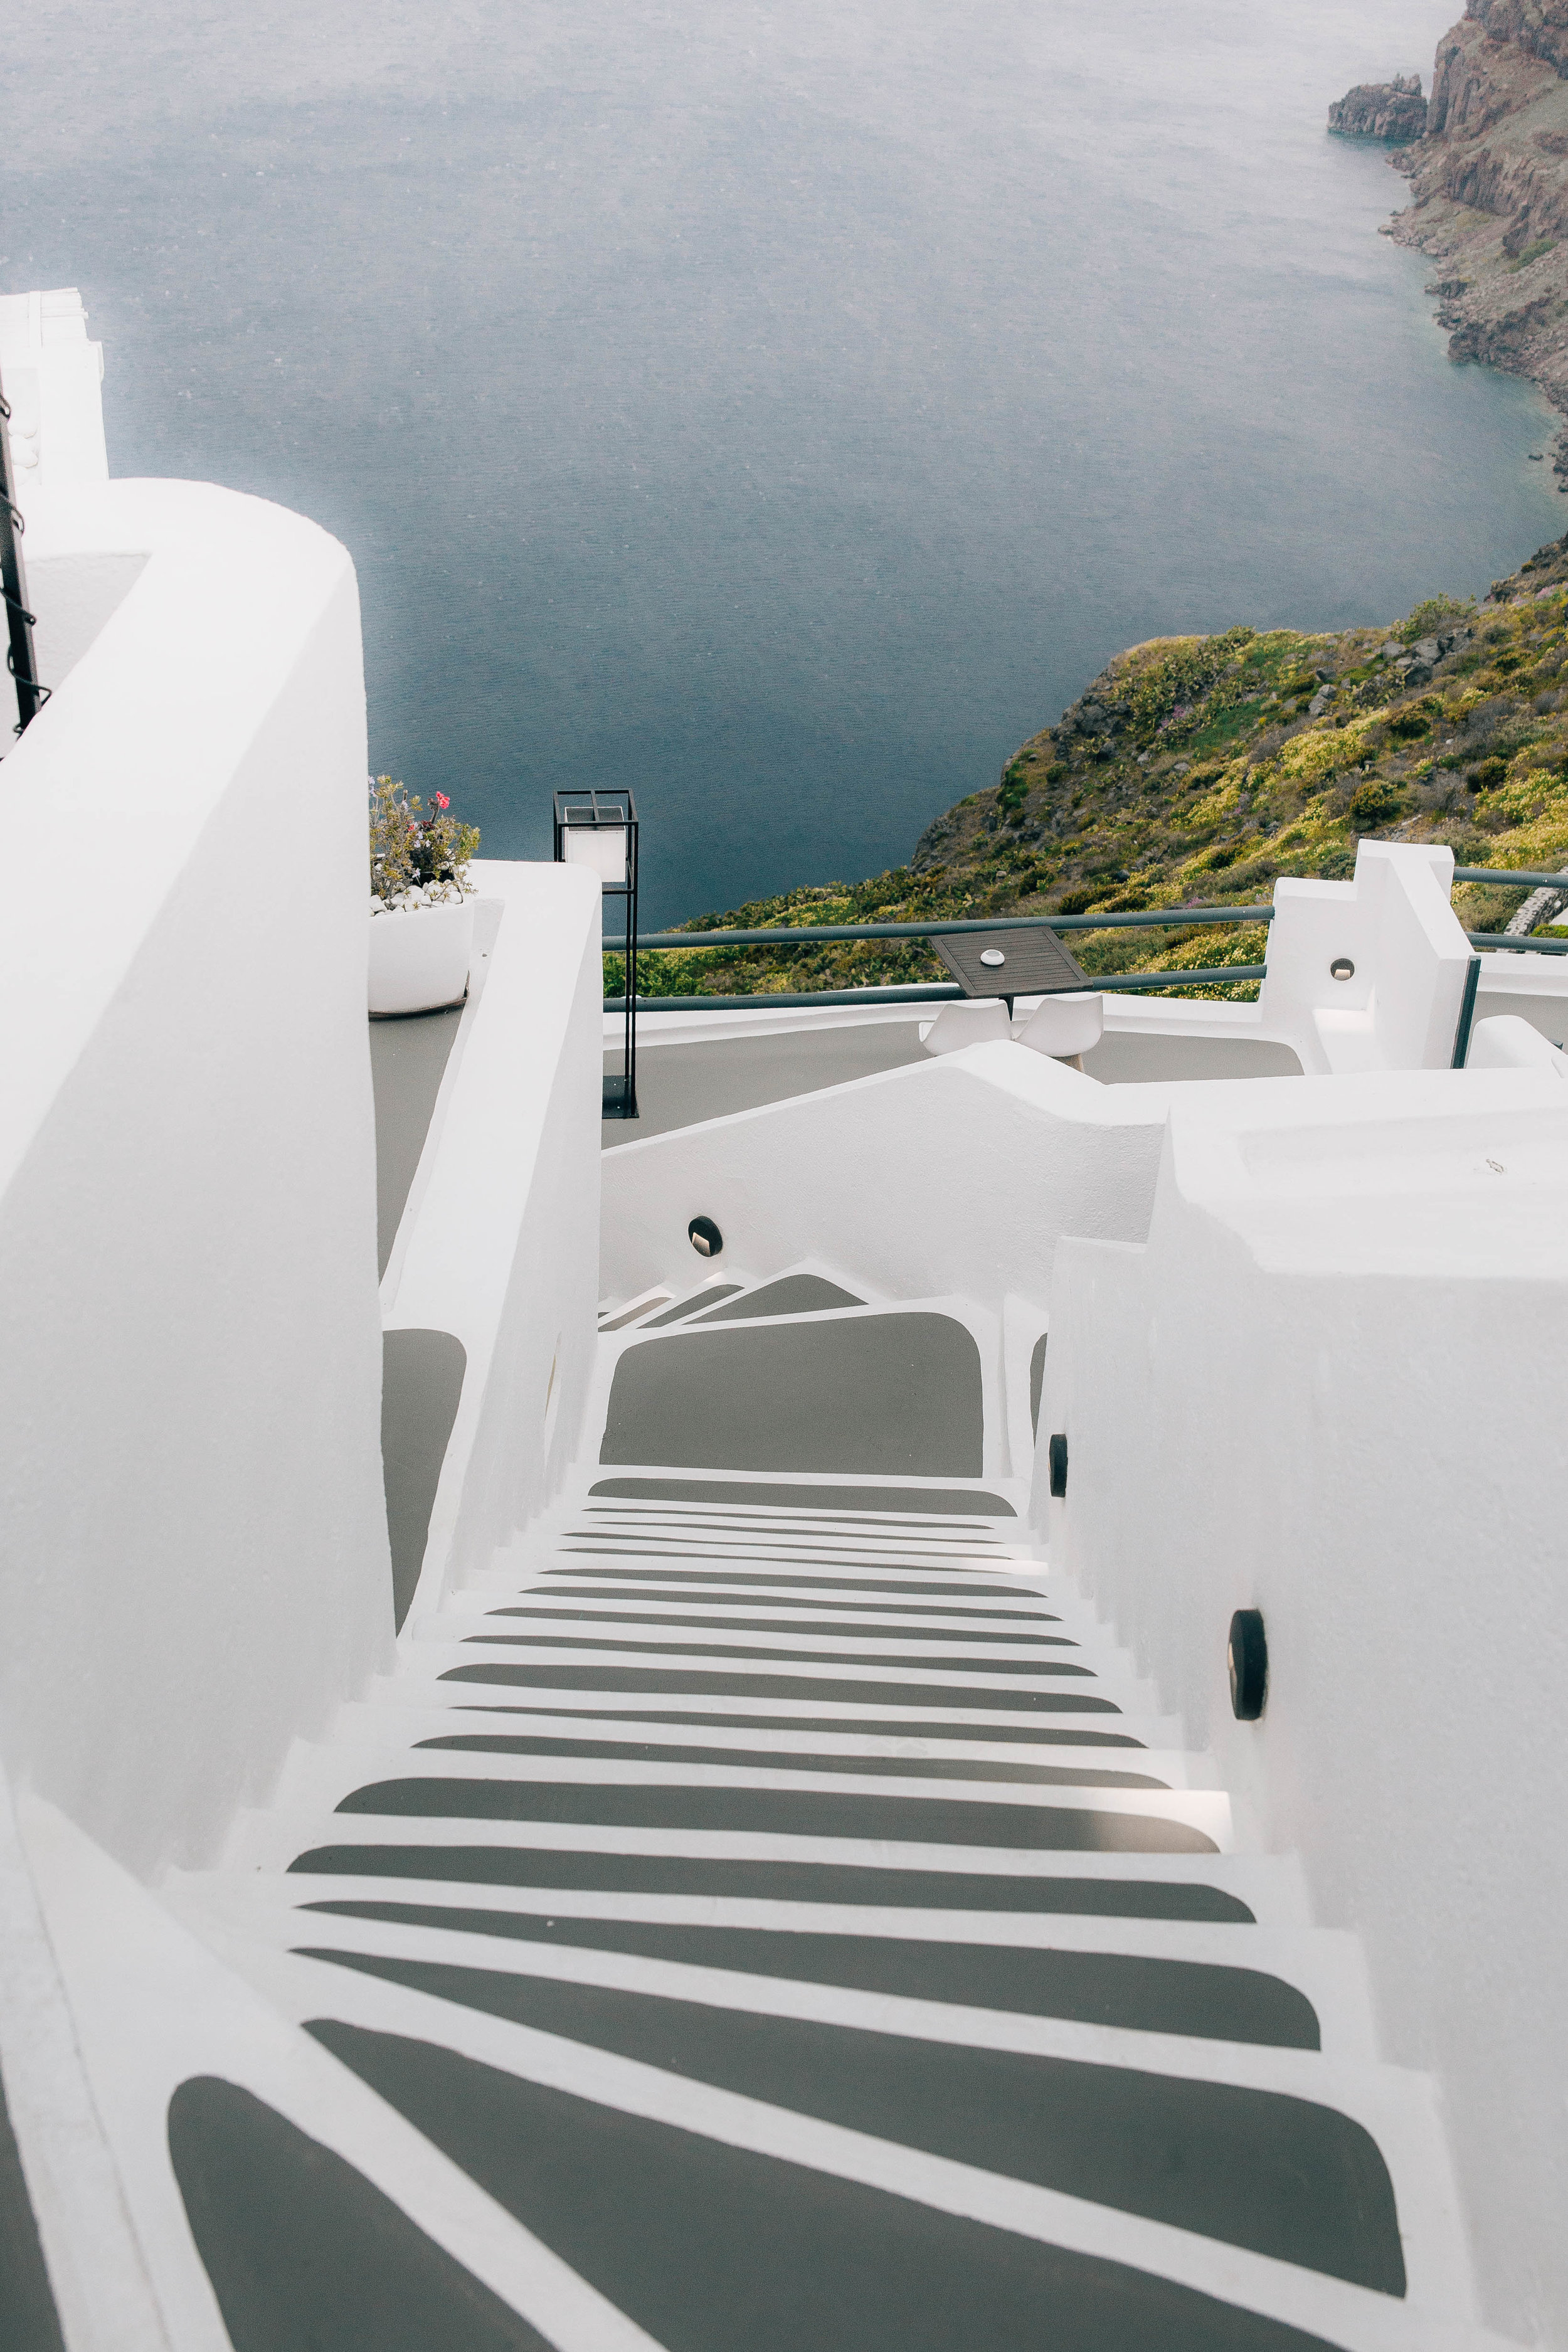 Oia Stairway